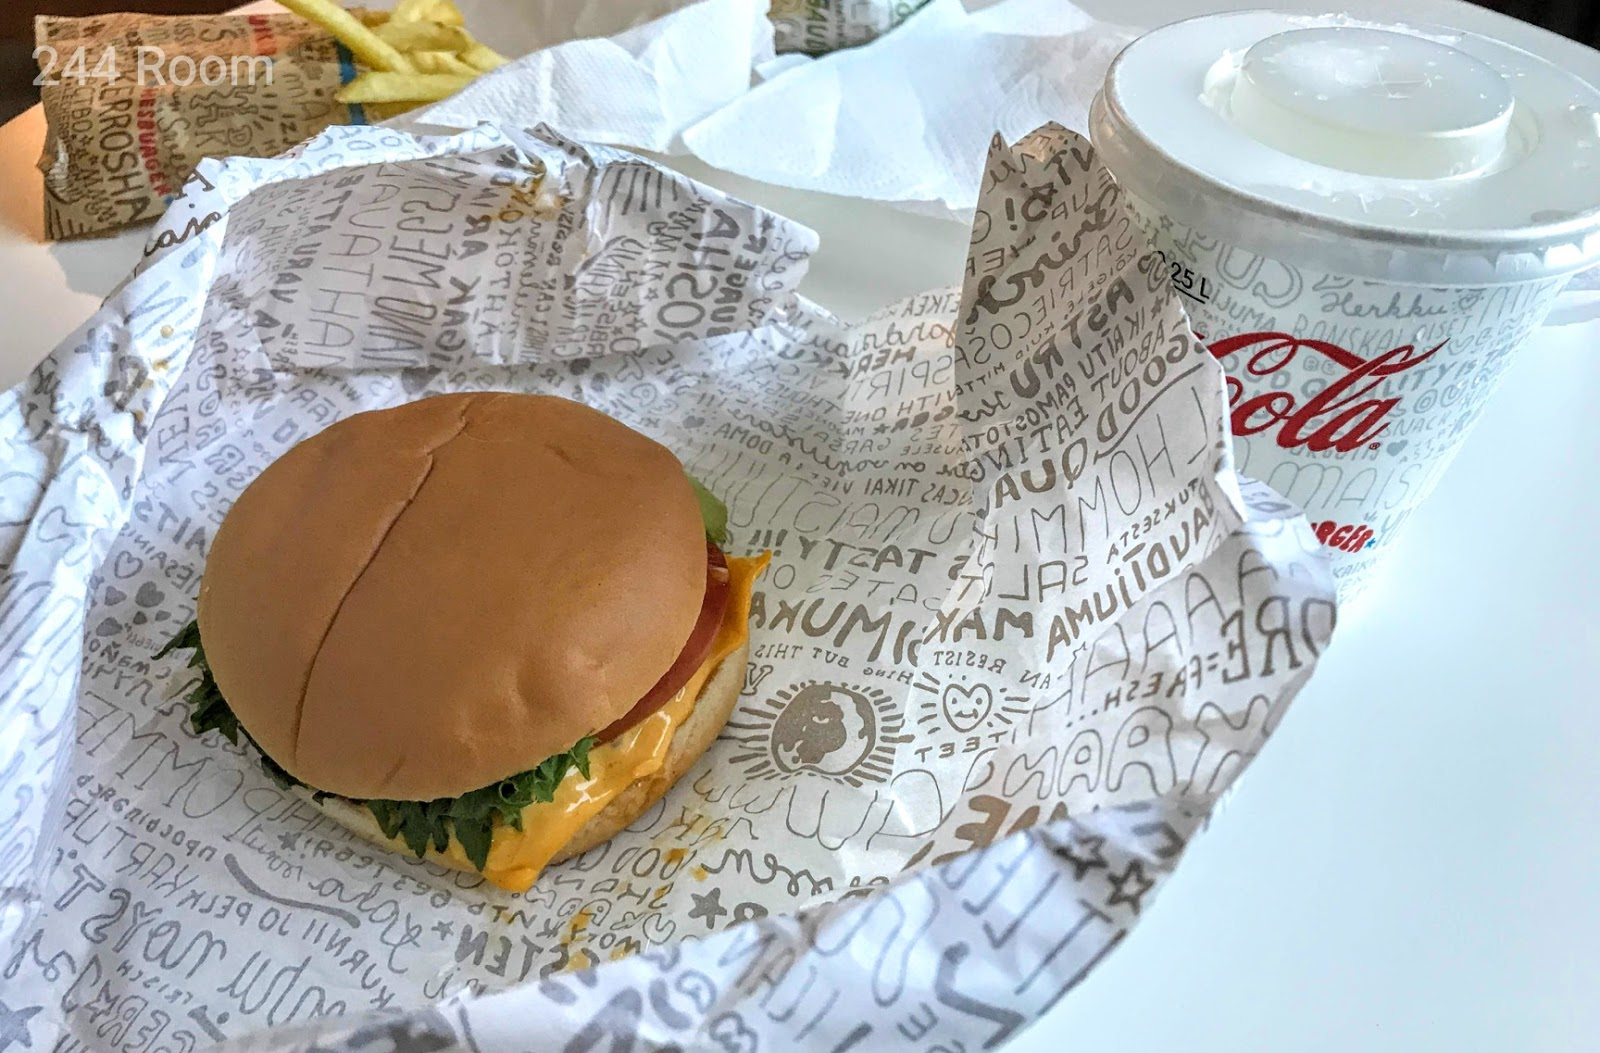 HESBURGER-Estonia-cheese burger